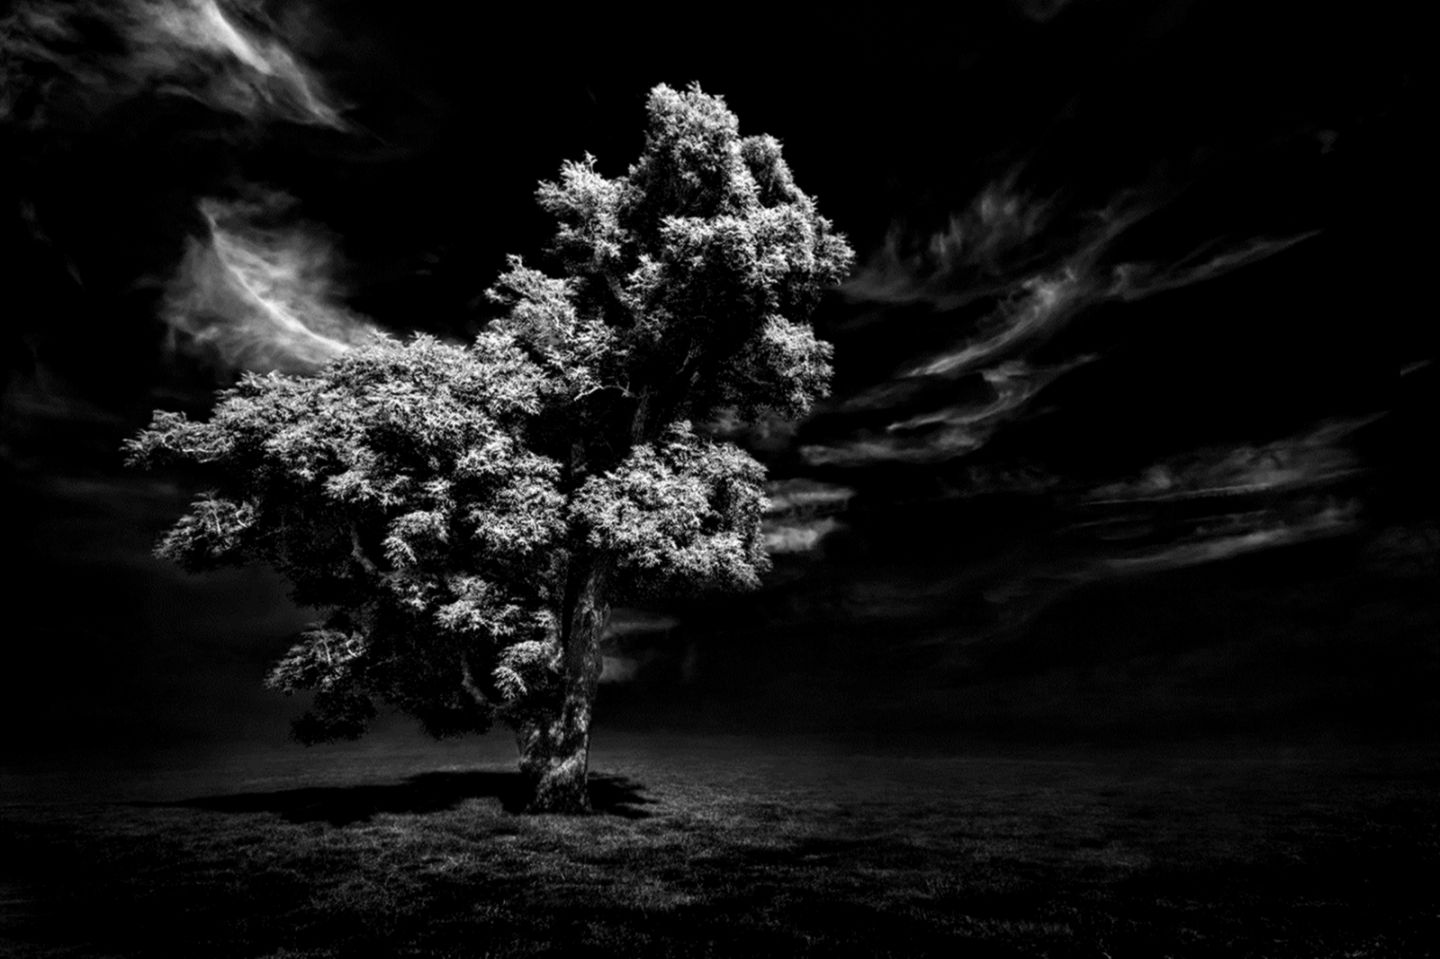 Wallpaper Hd 1080p Black And White Forest Link Wallpapers